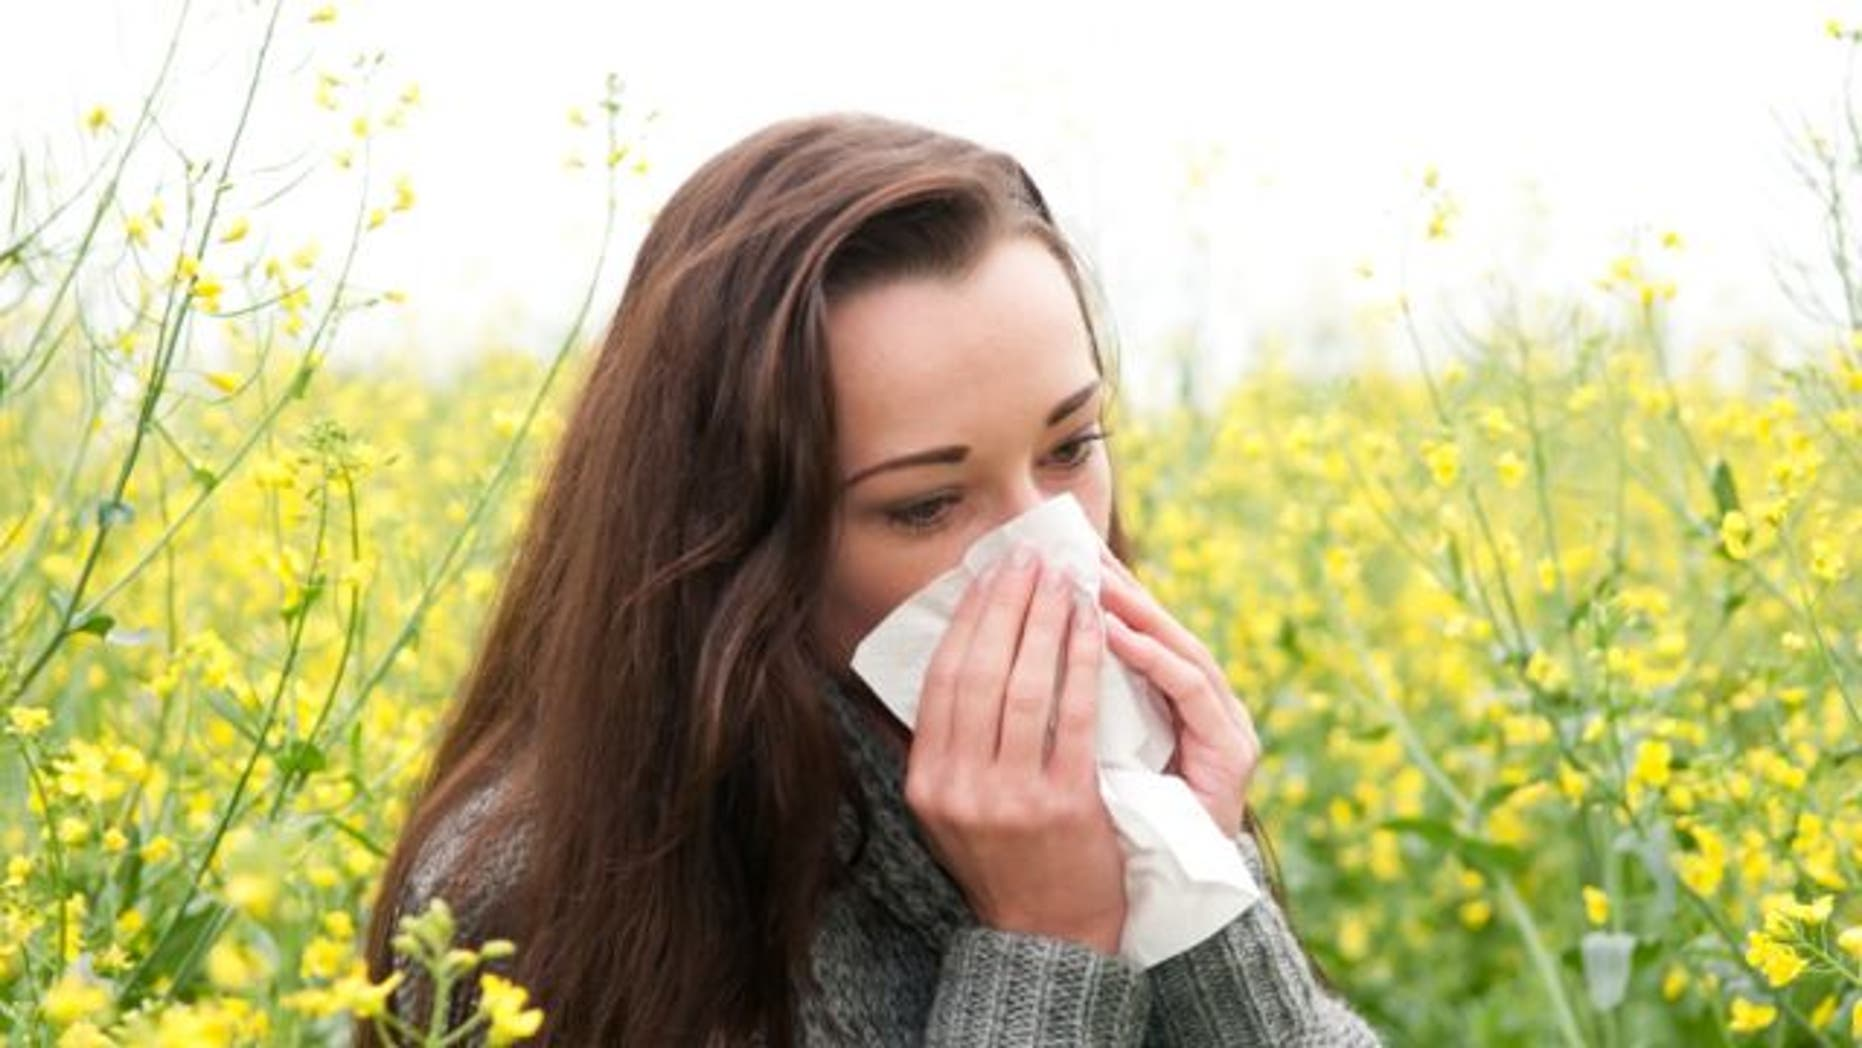 The sound of people breathing,coughing, sneezing or drinking is uncomfortable, distracting, irritating or painful